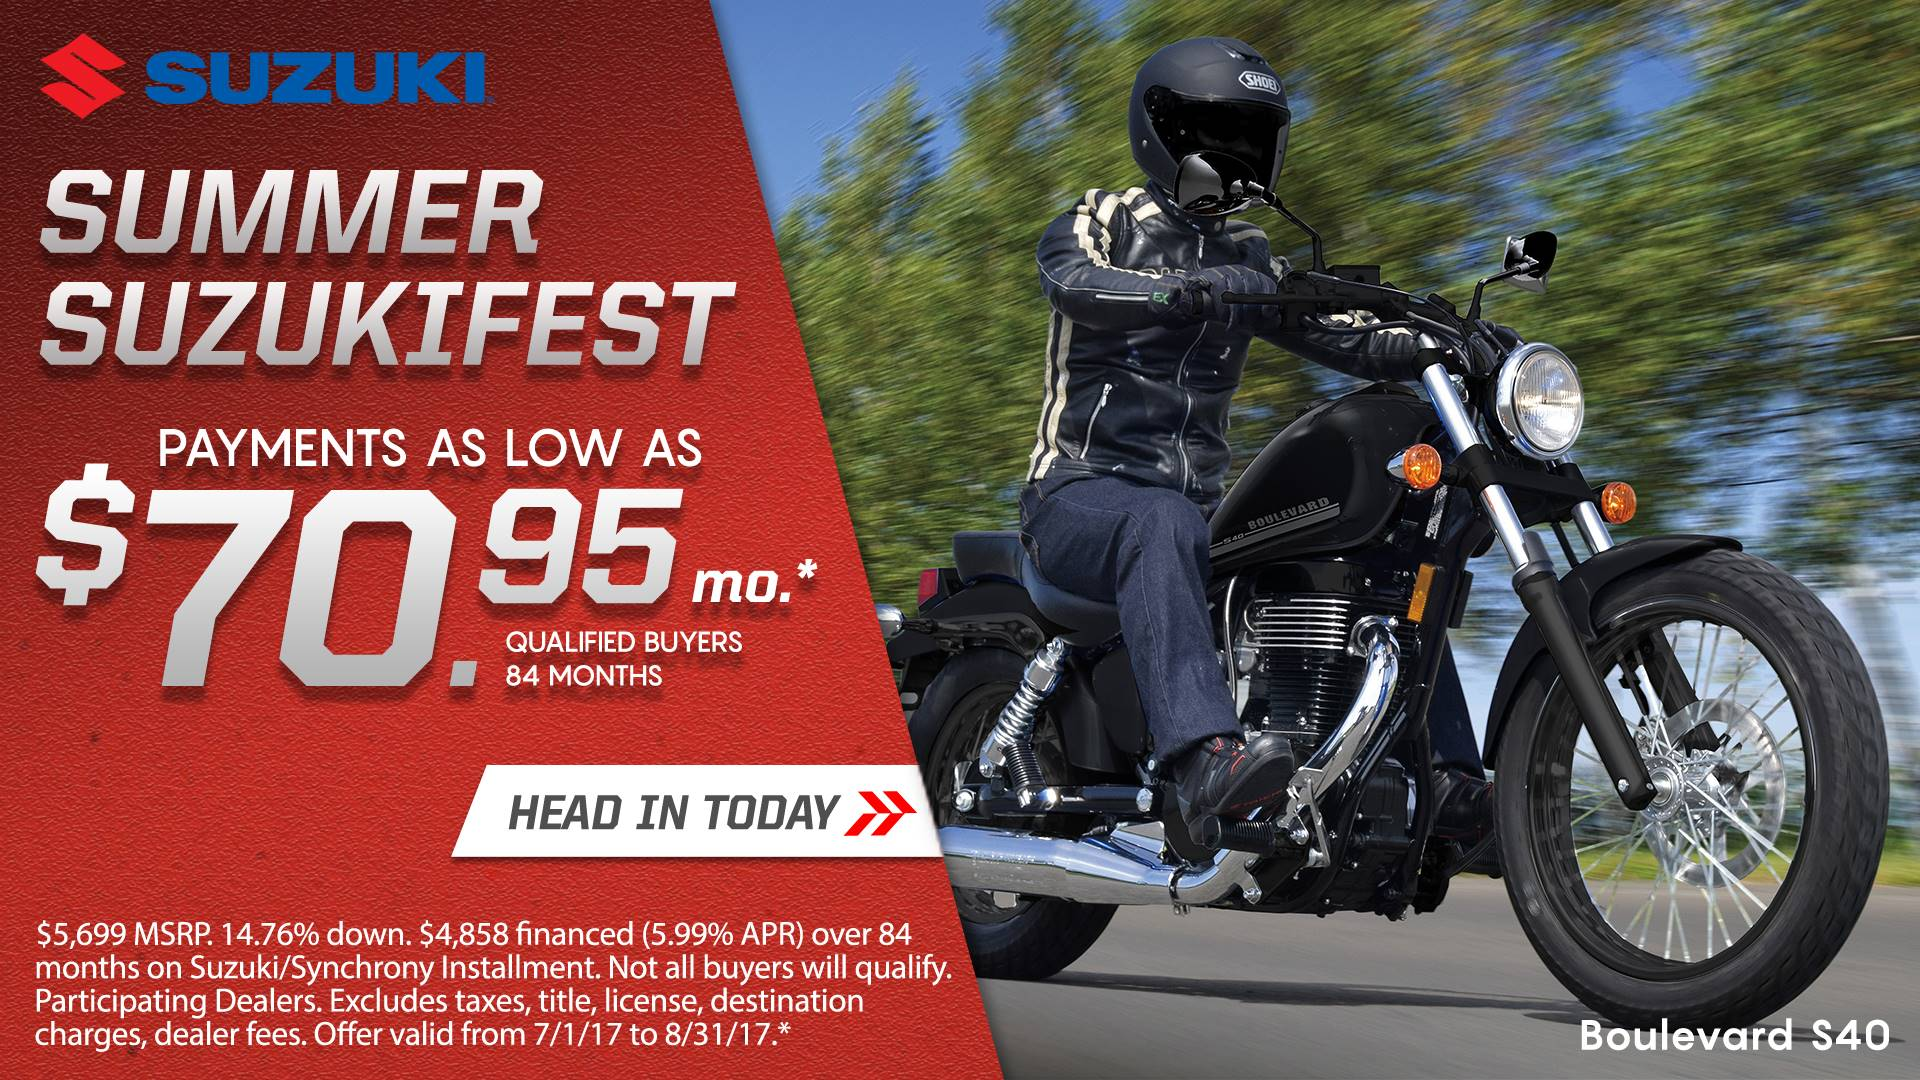 Suzuki Motor of America Inc. Suzuki Suzukifest Cruiser and Touring Motorcycle Financing as Low as 0% APR for 36 Months or Customer Cash Offer